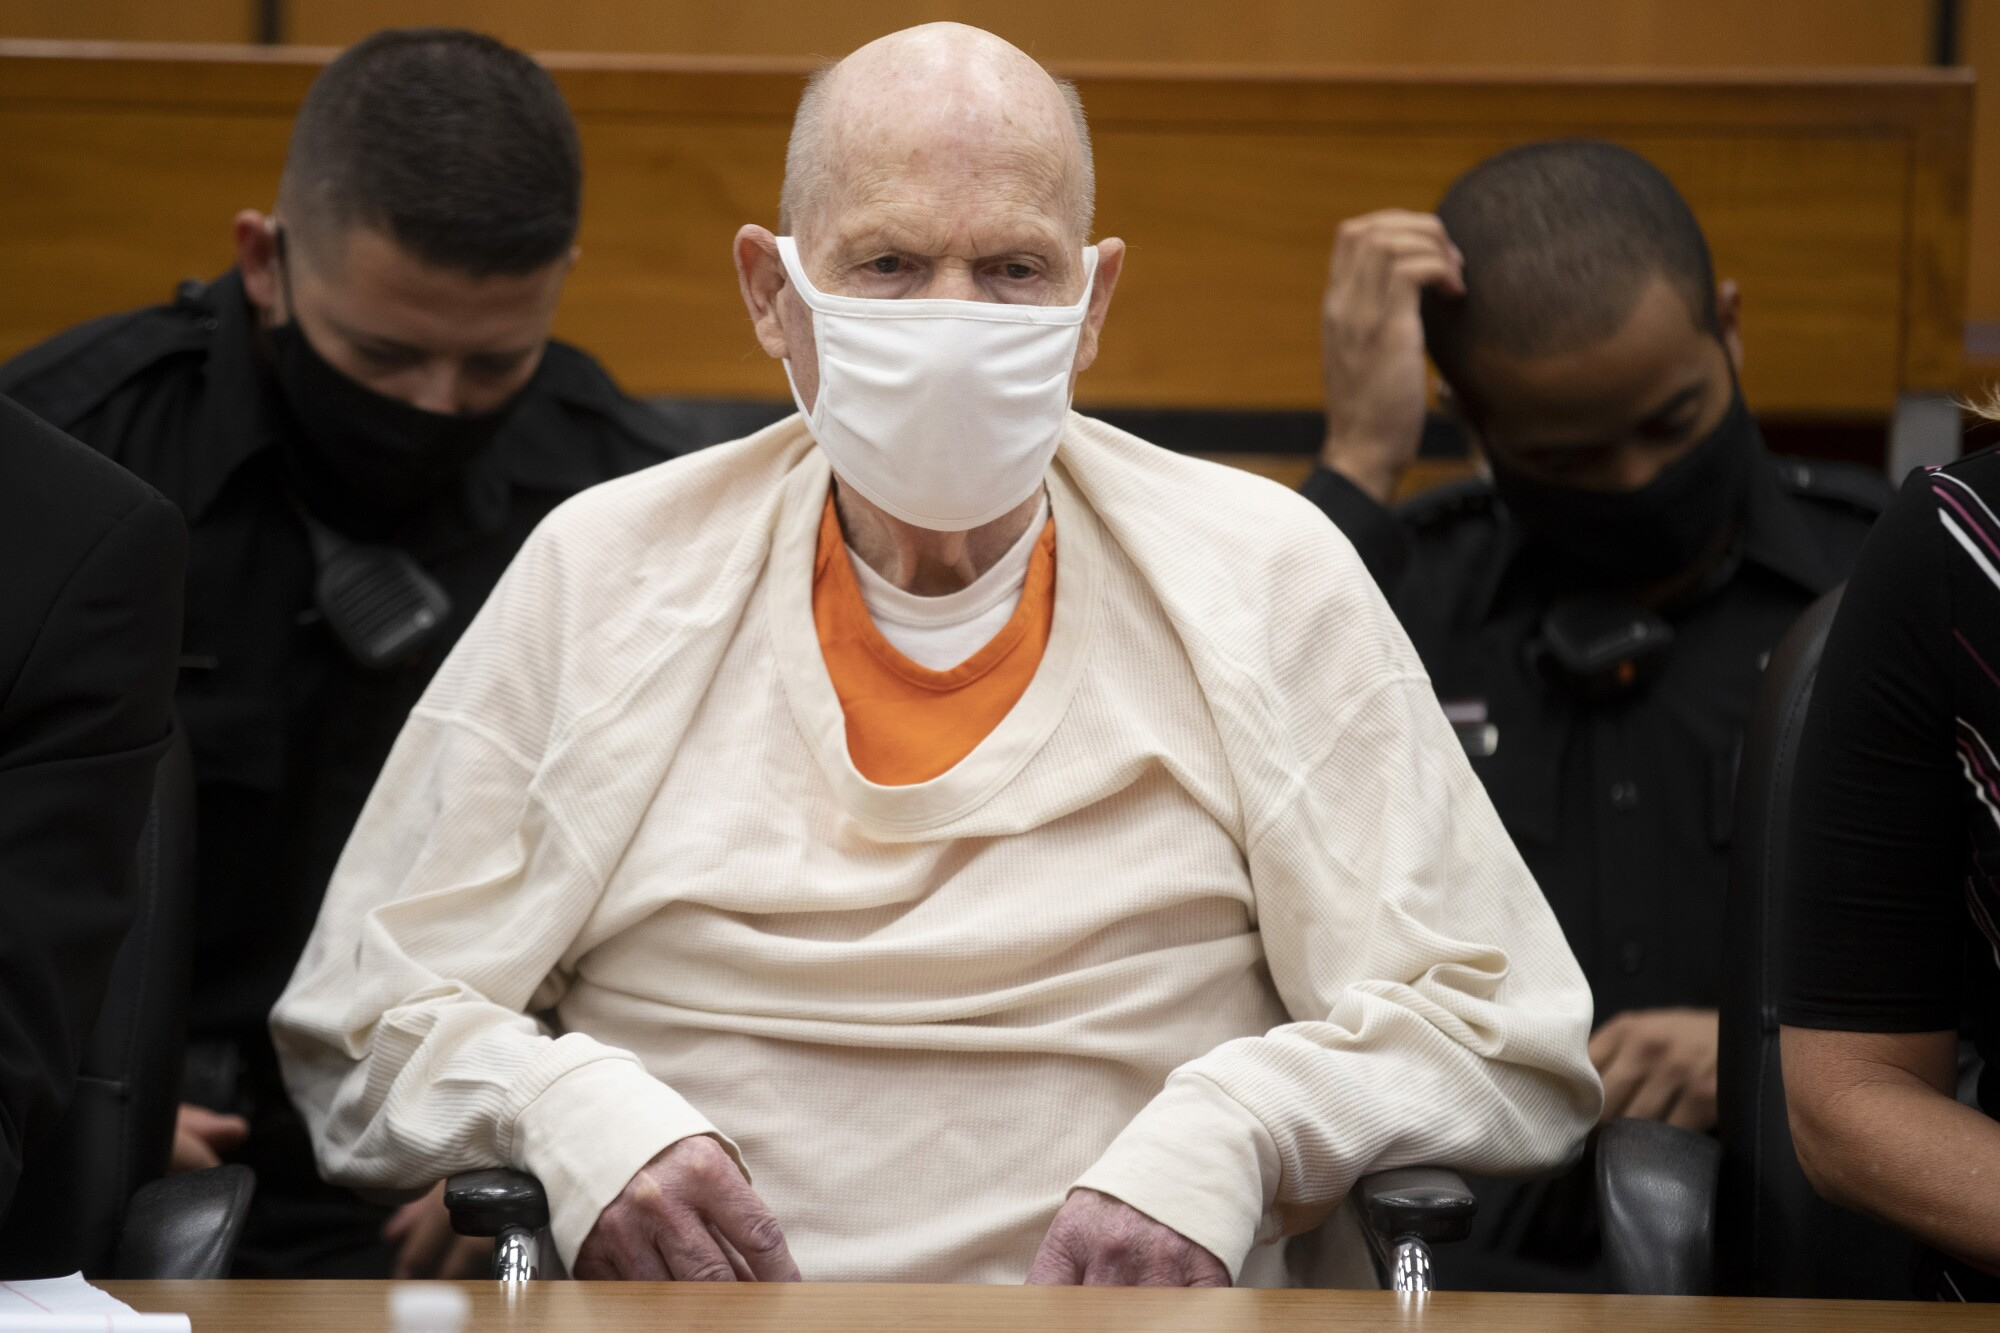 A masked Joseph James DeAngelo Jr. sits in a courtroom